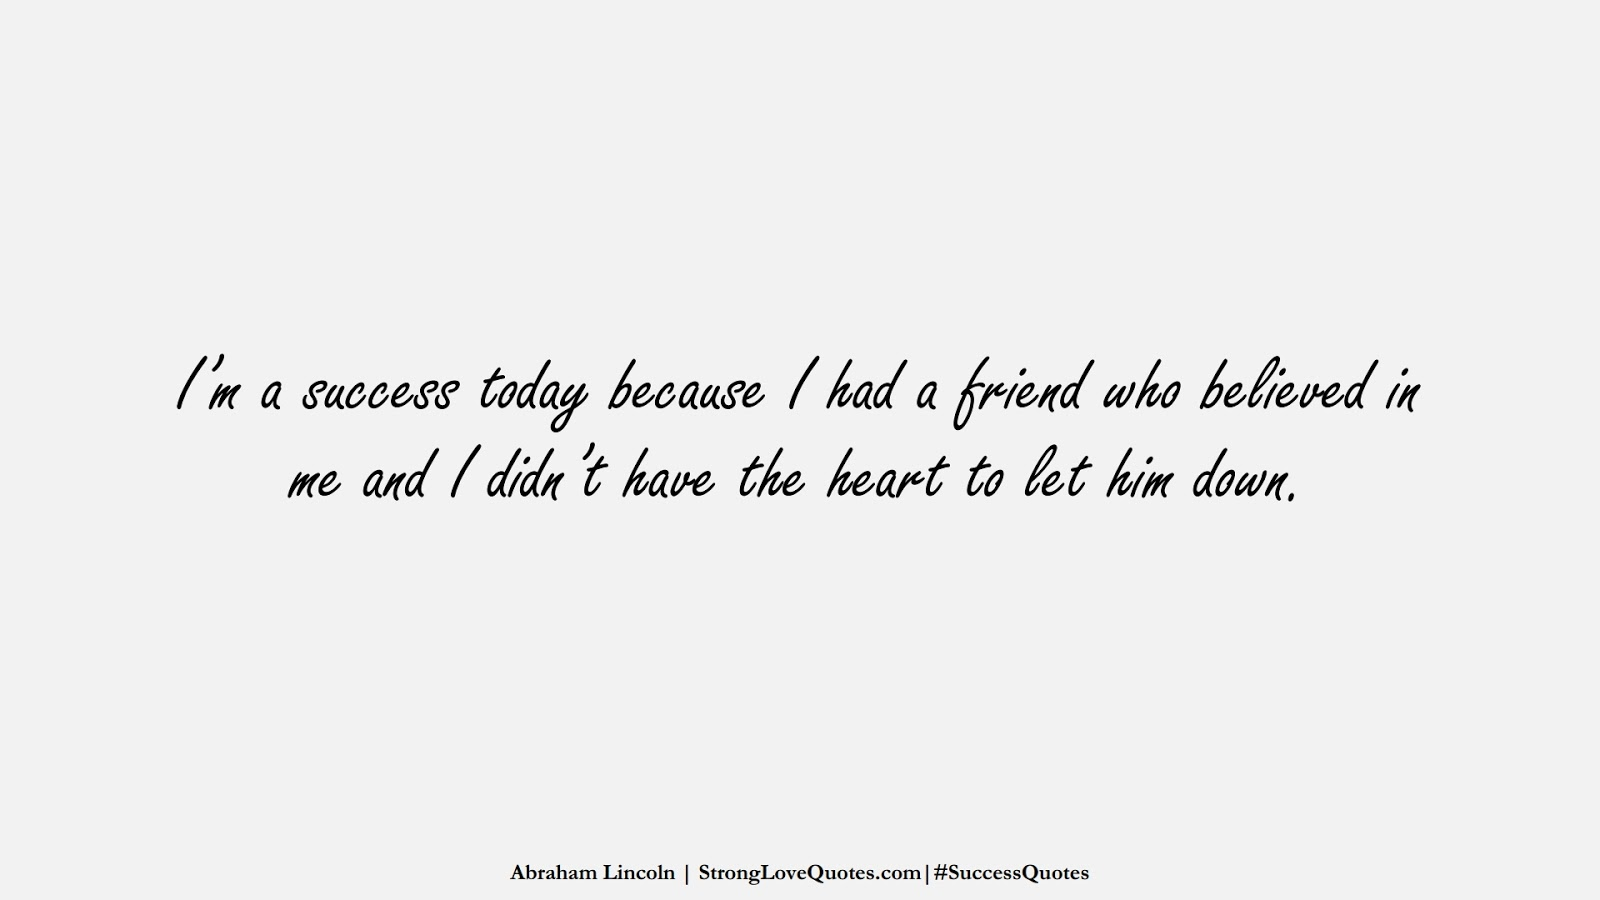 I'm a success today because I had a friend who believed in me and I didn't have the heart to let him down. (Abraham Lincoln);  #SuccessQuotes